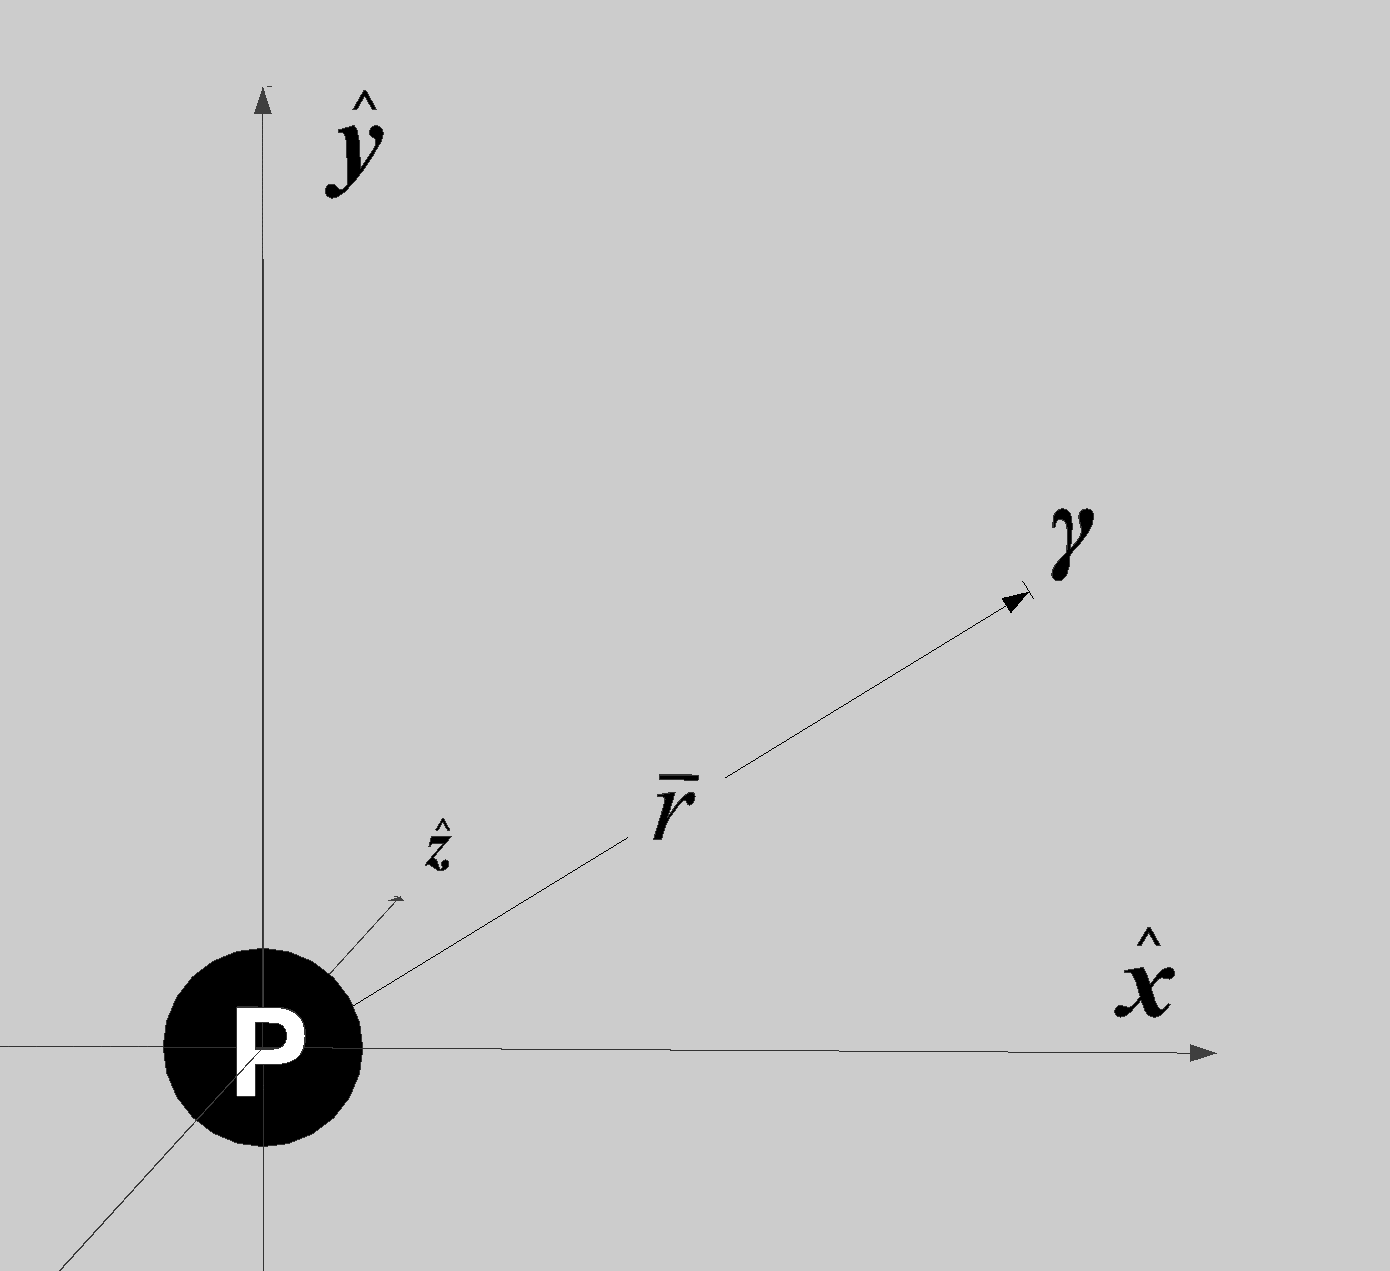 A three-dimensional space with particle P at the center of a Cartesian coordinate system. P includes a proton-core located at the origin and a photon somewhere in the vicinity.